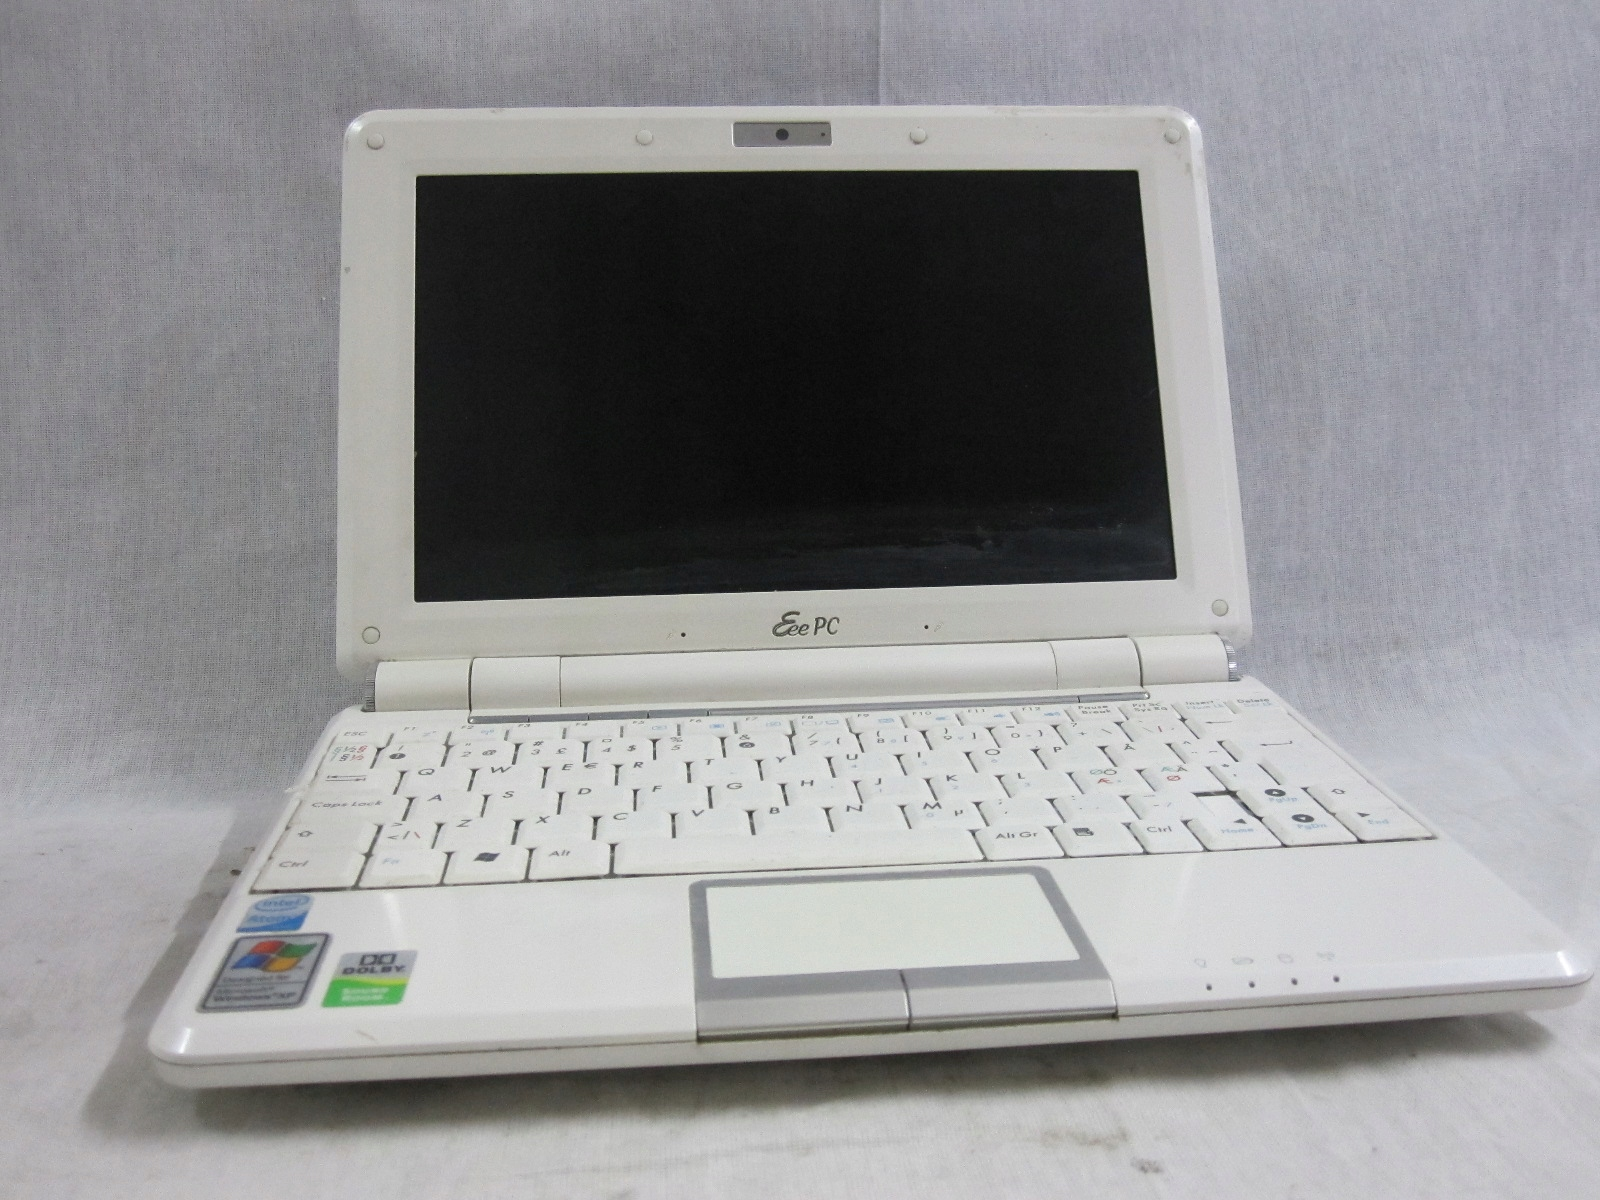 Laptop Asus Eee PC 1000H Intel 1,60GHz 2GB 120GB